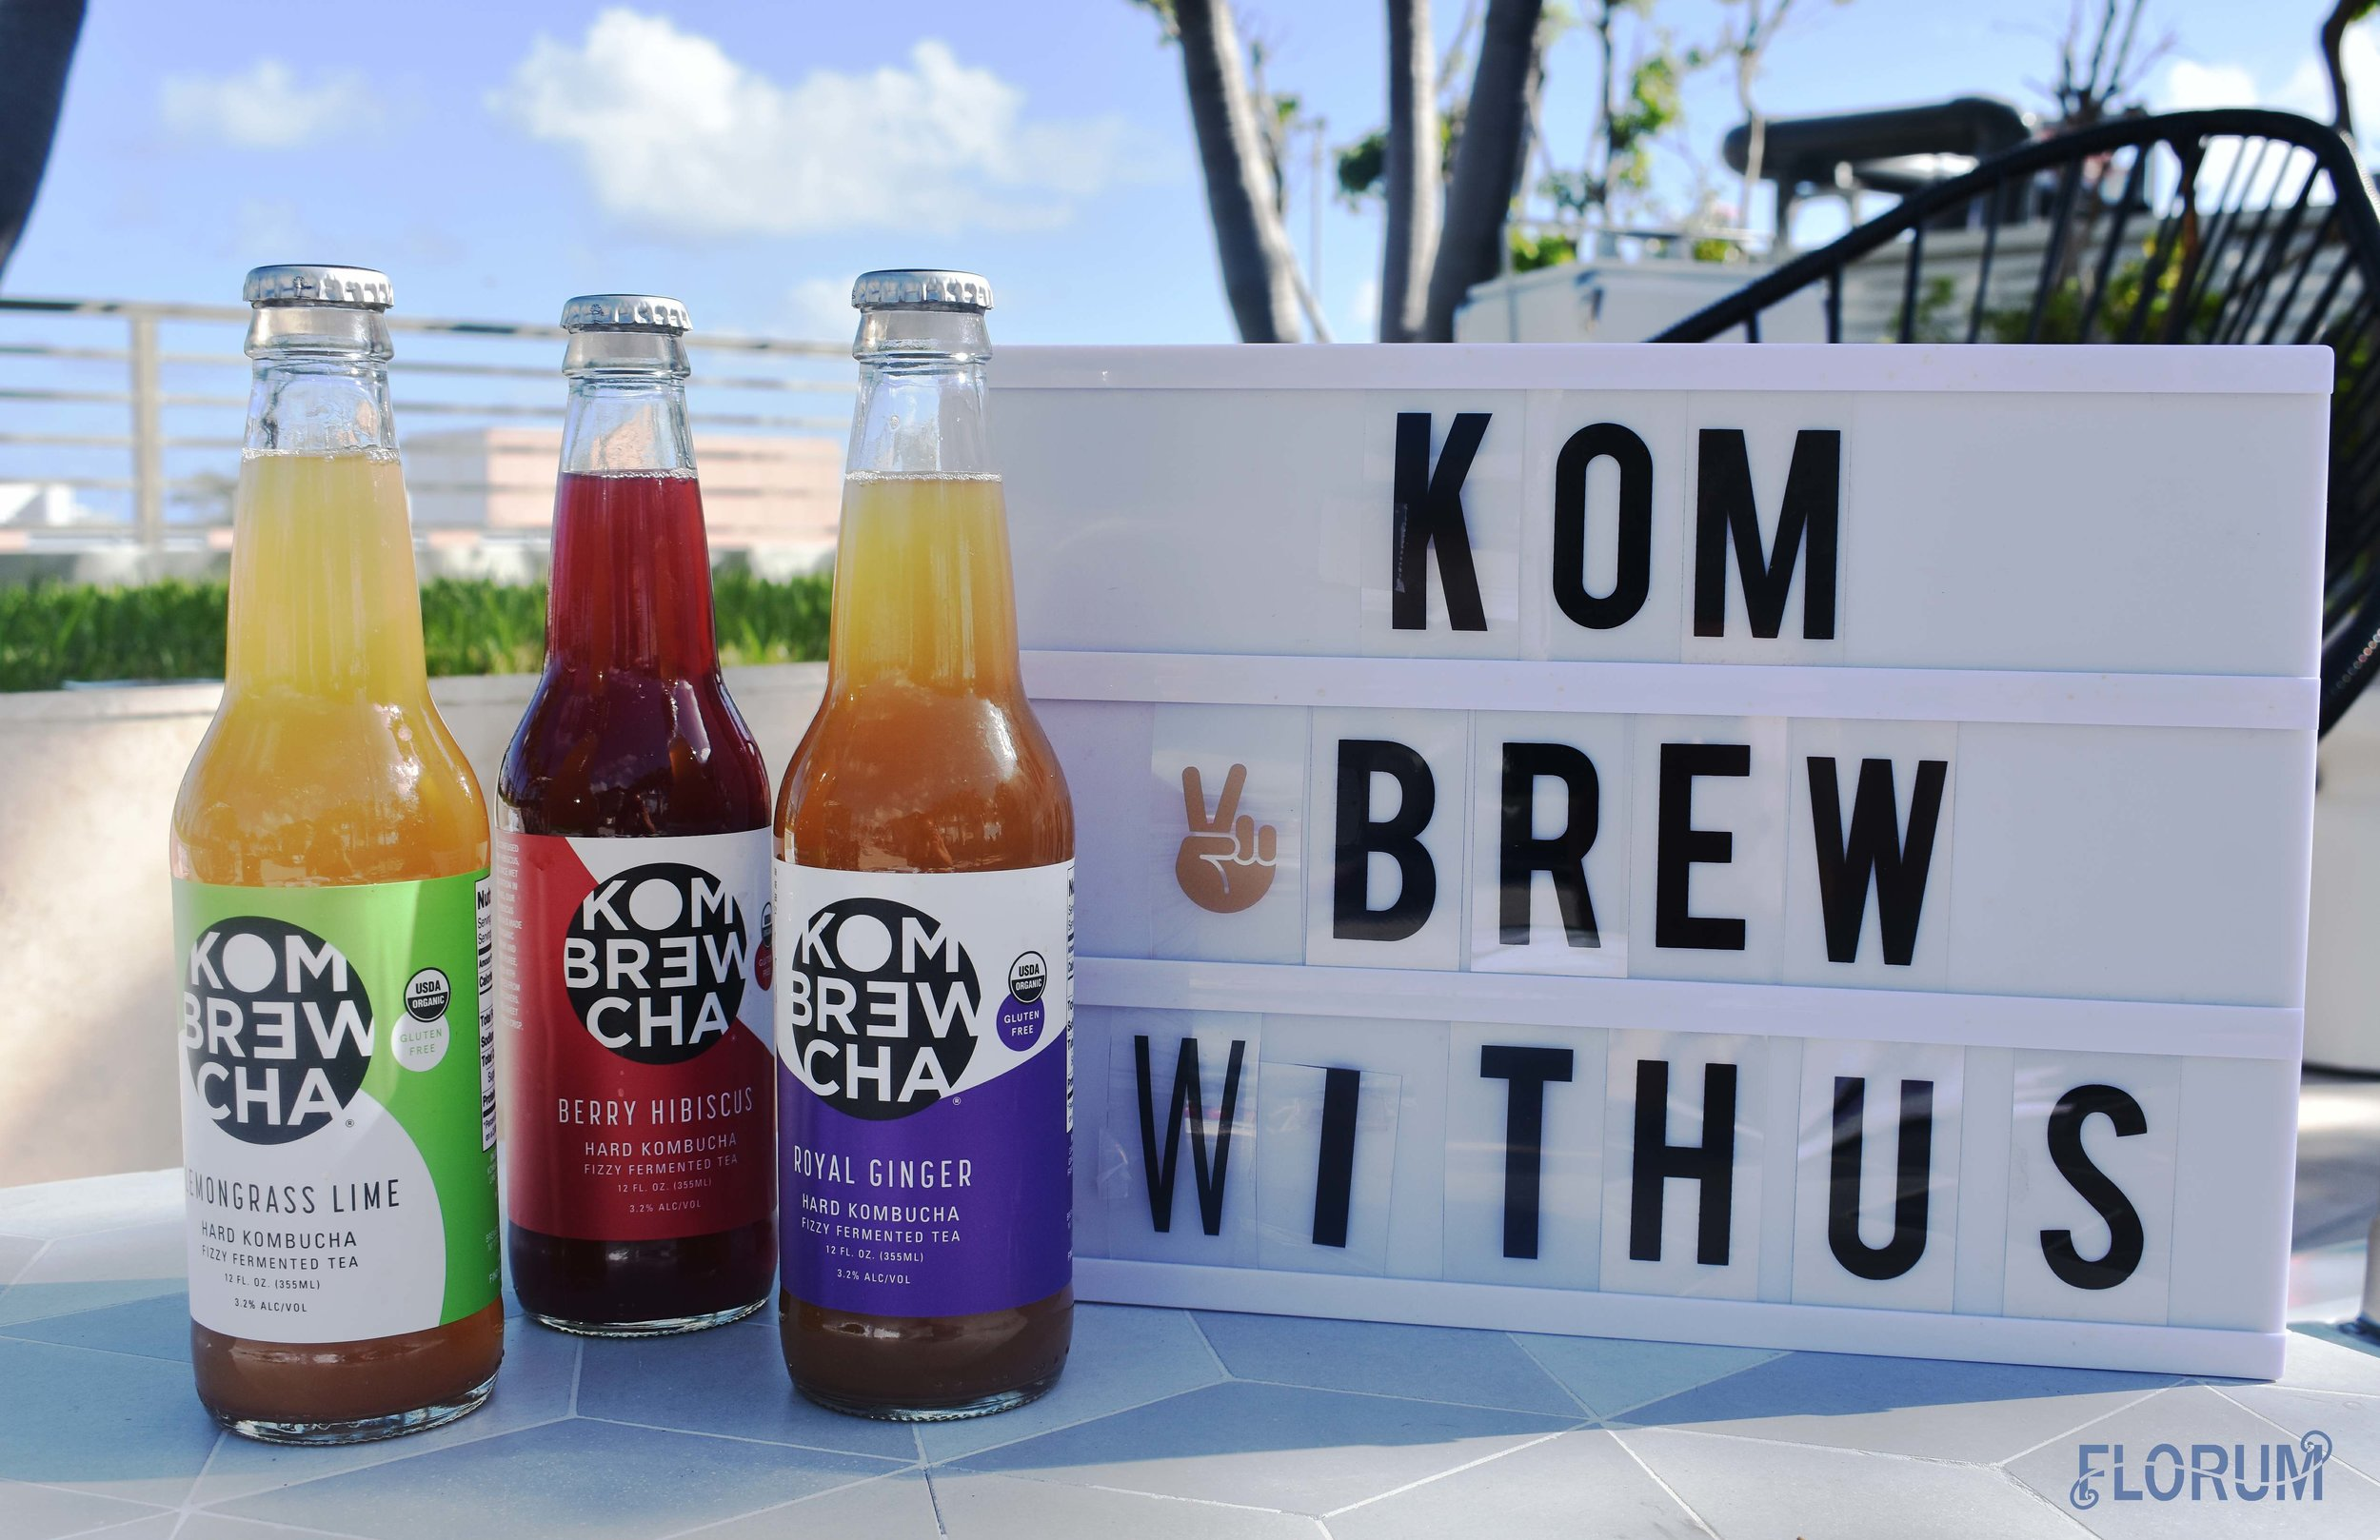 After the meditation session, I treated myself to my daily dose of probiotics via  Kombrewcha.   Kombrewcha  is known as the first hard kombucha, and the Royal Ginger & OG (not pictured) were my favorites!